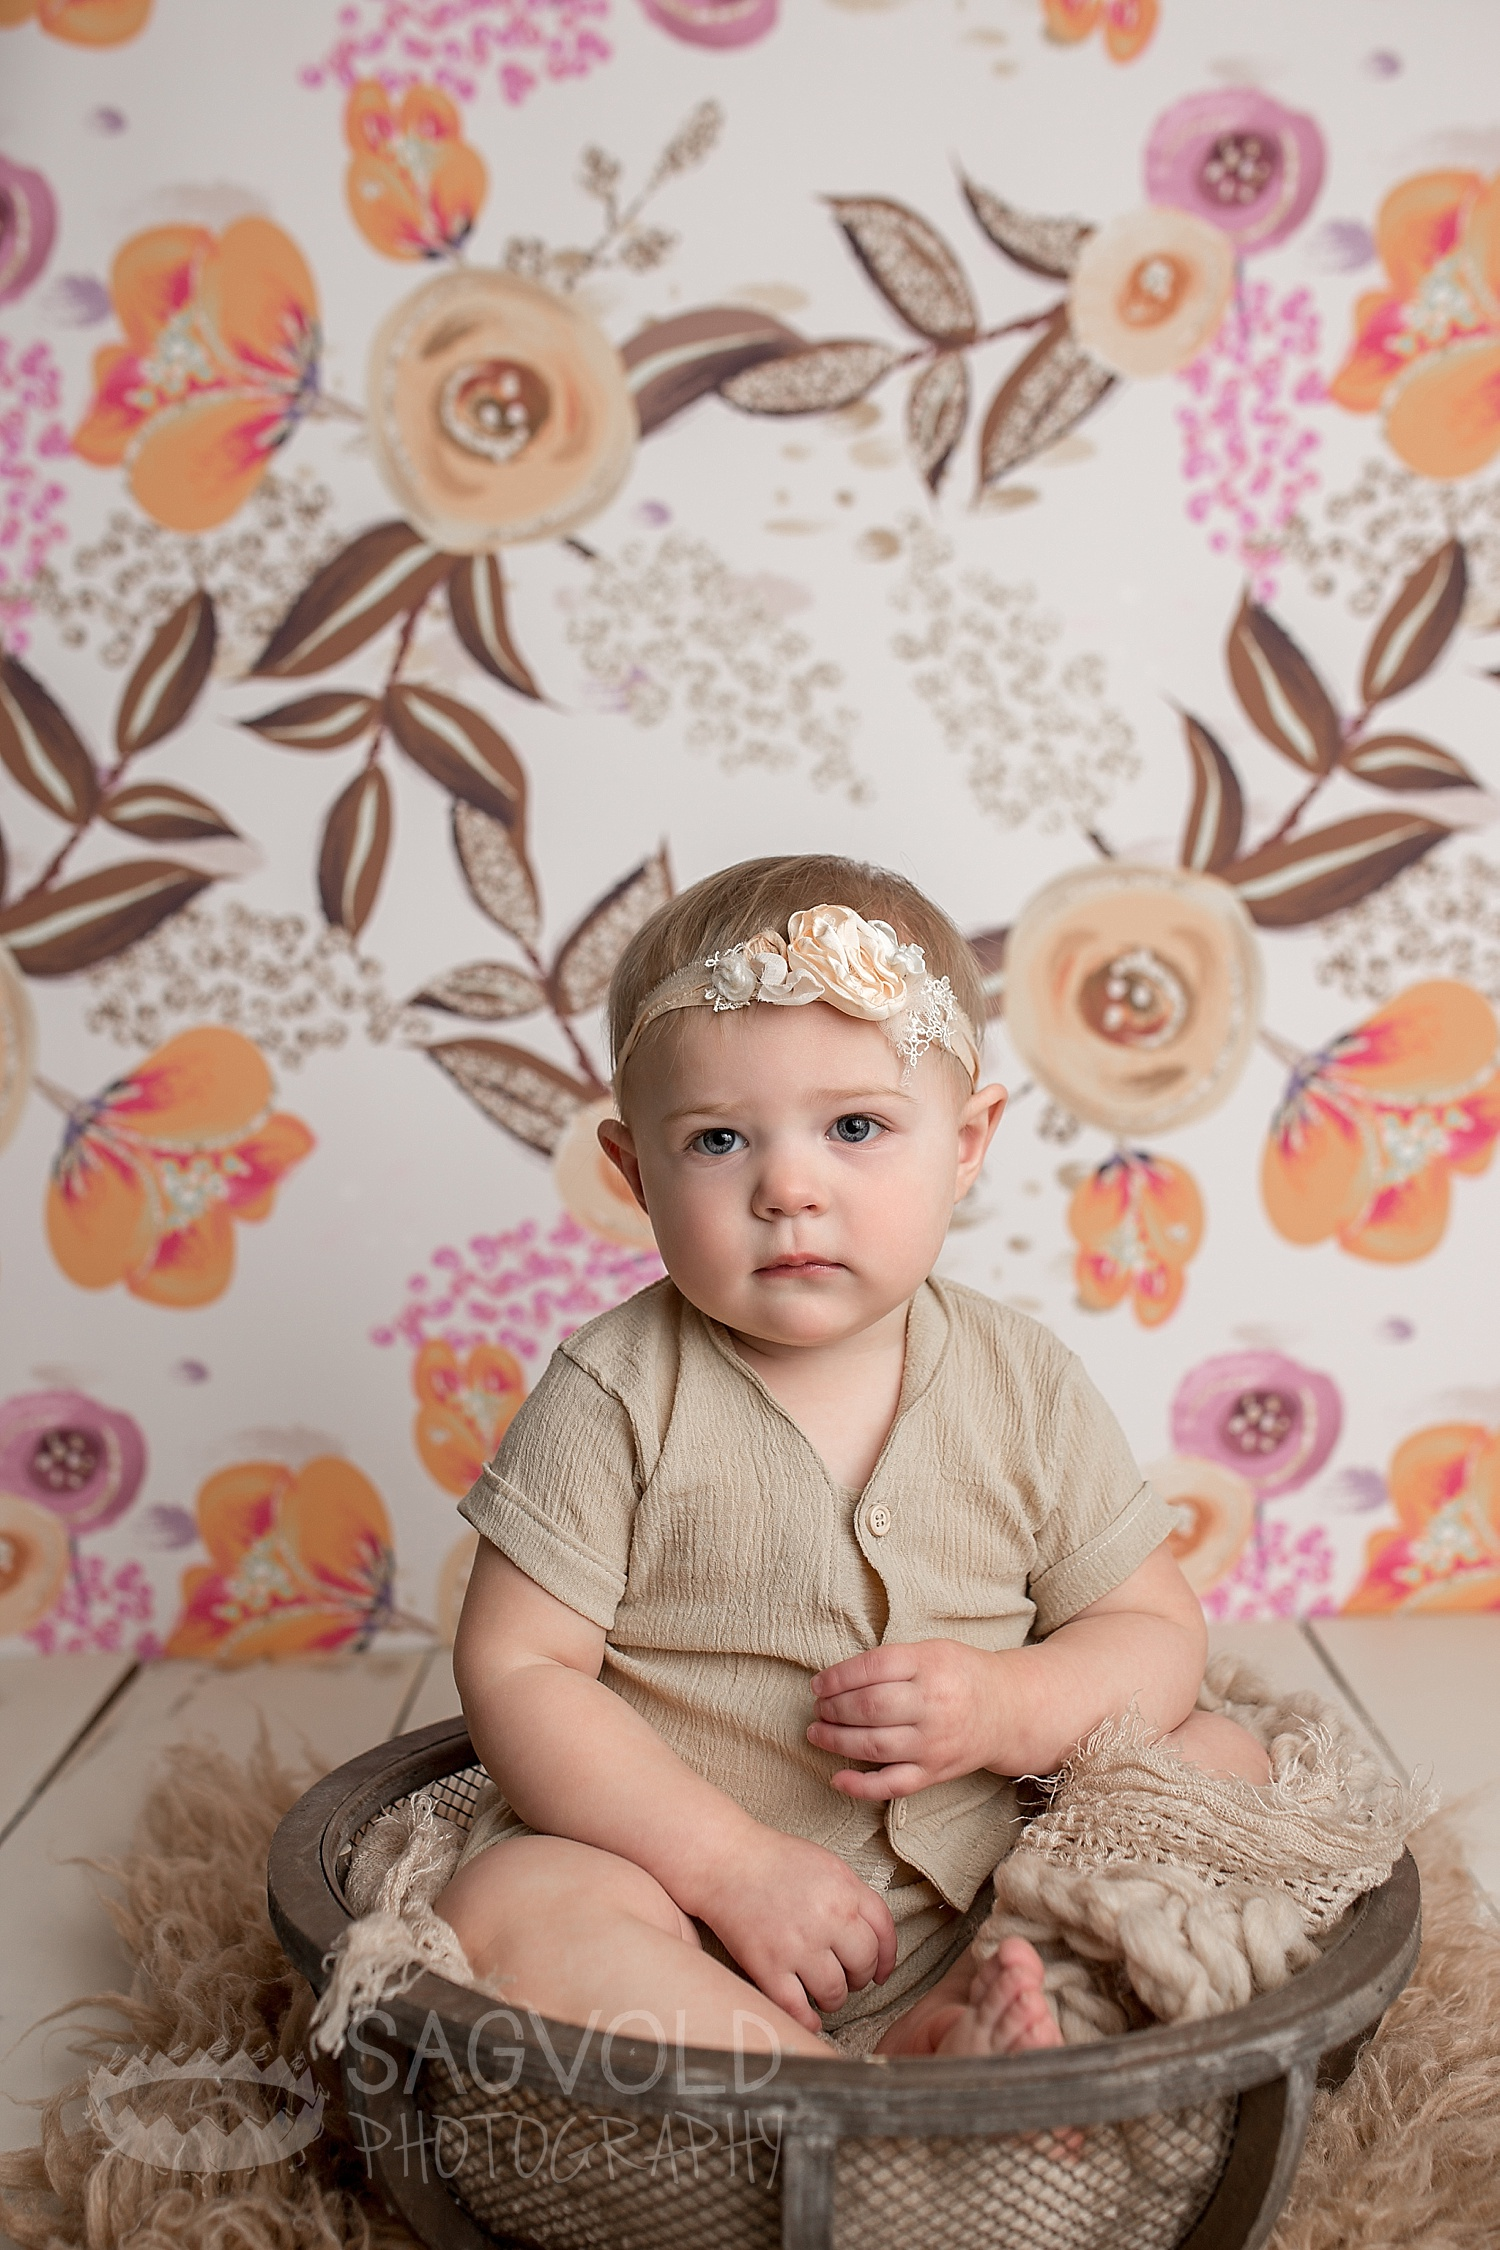 Baby picture Fargo ND baby photographer Janna Sagvold Photography